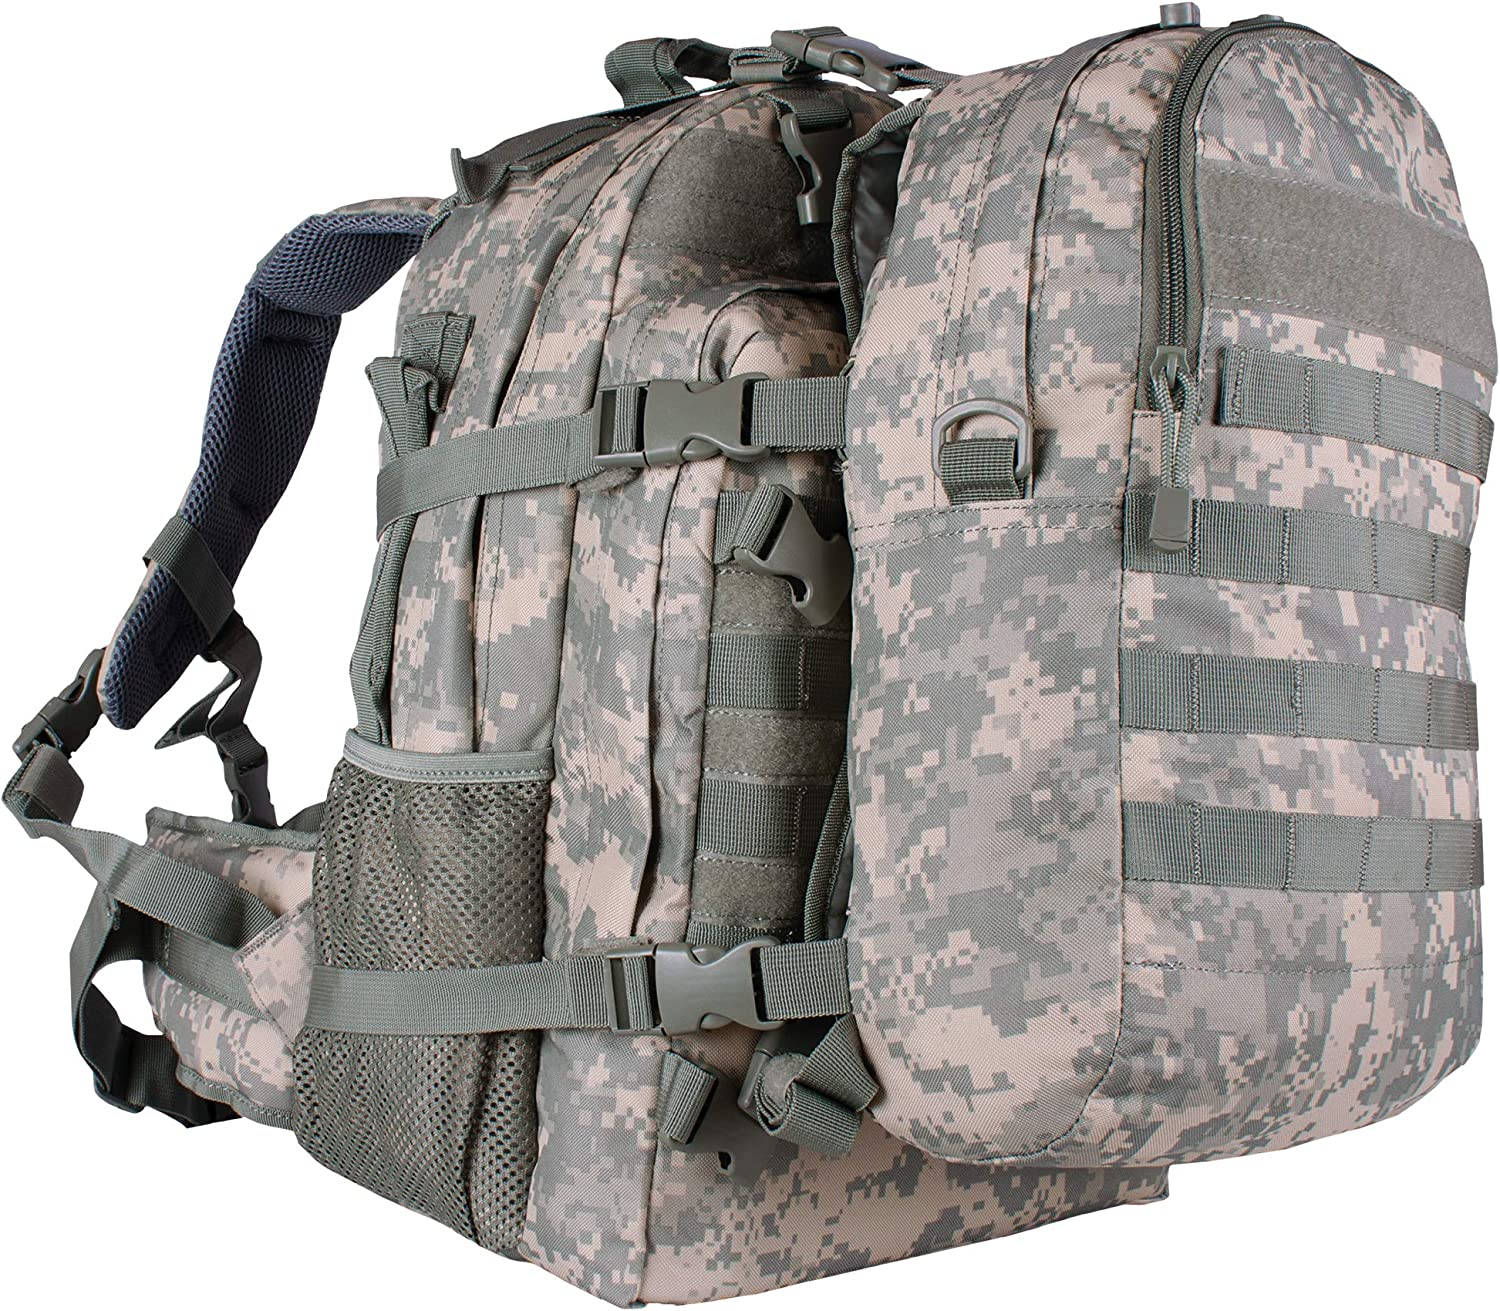 Fox Outdoor Products Dual Tactical Pack System, Terrain Rubberized Digital